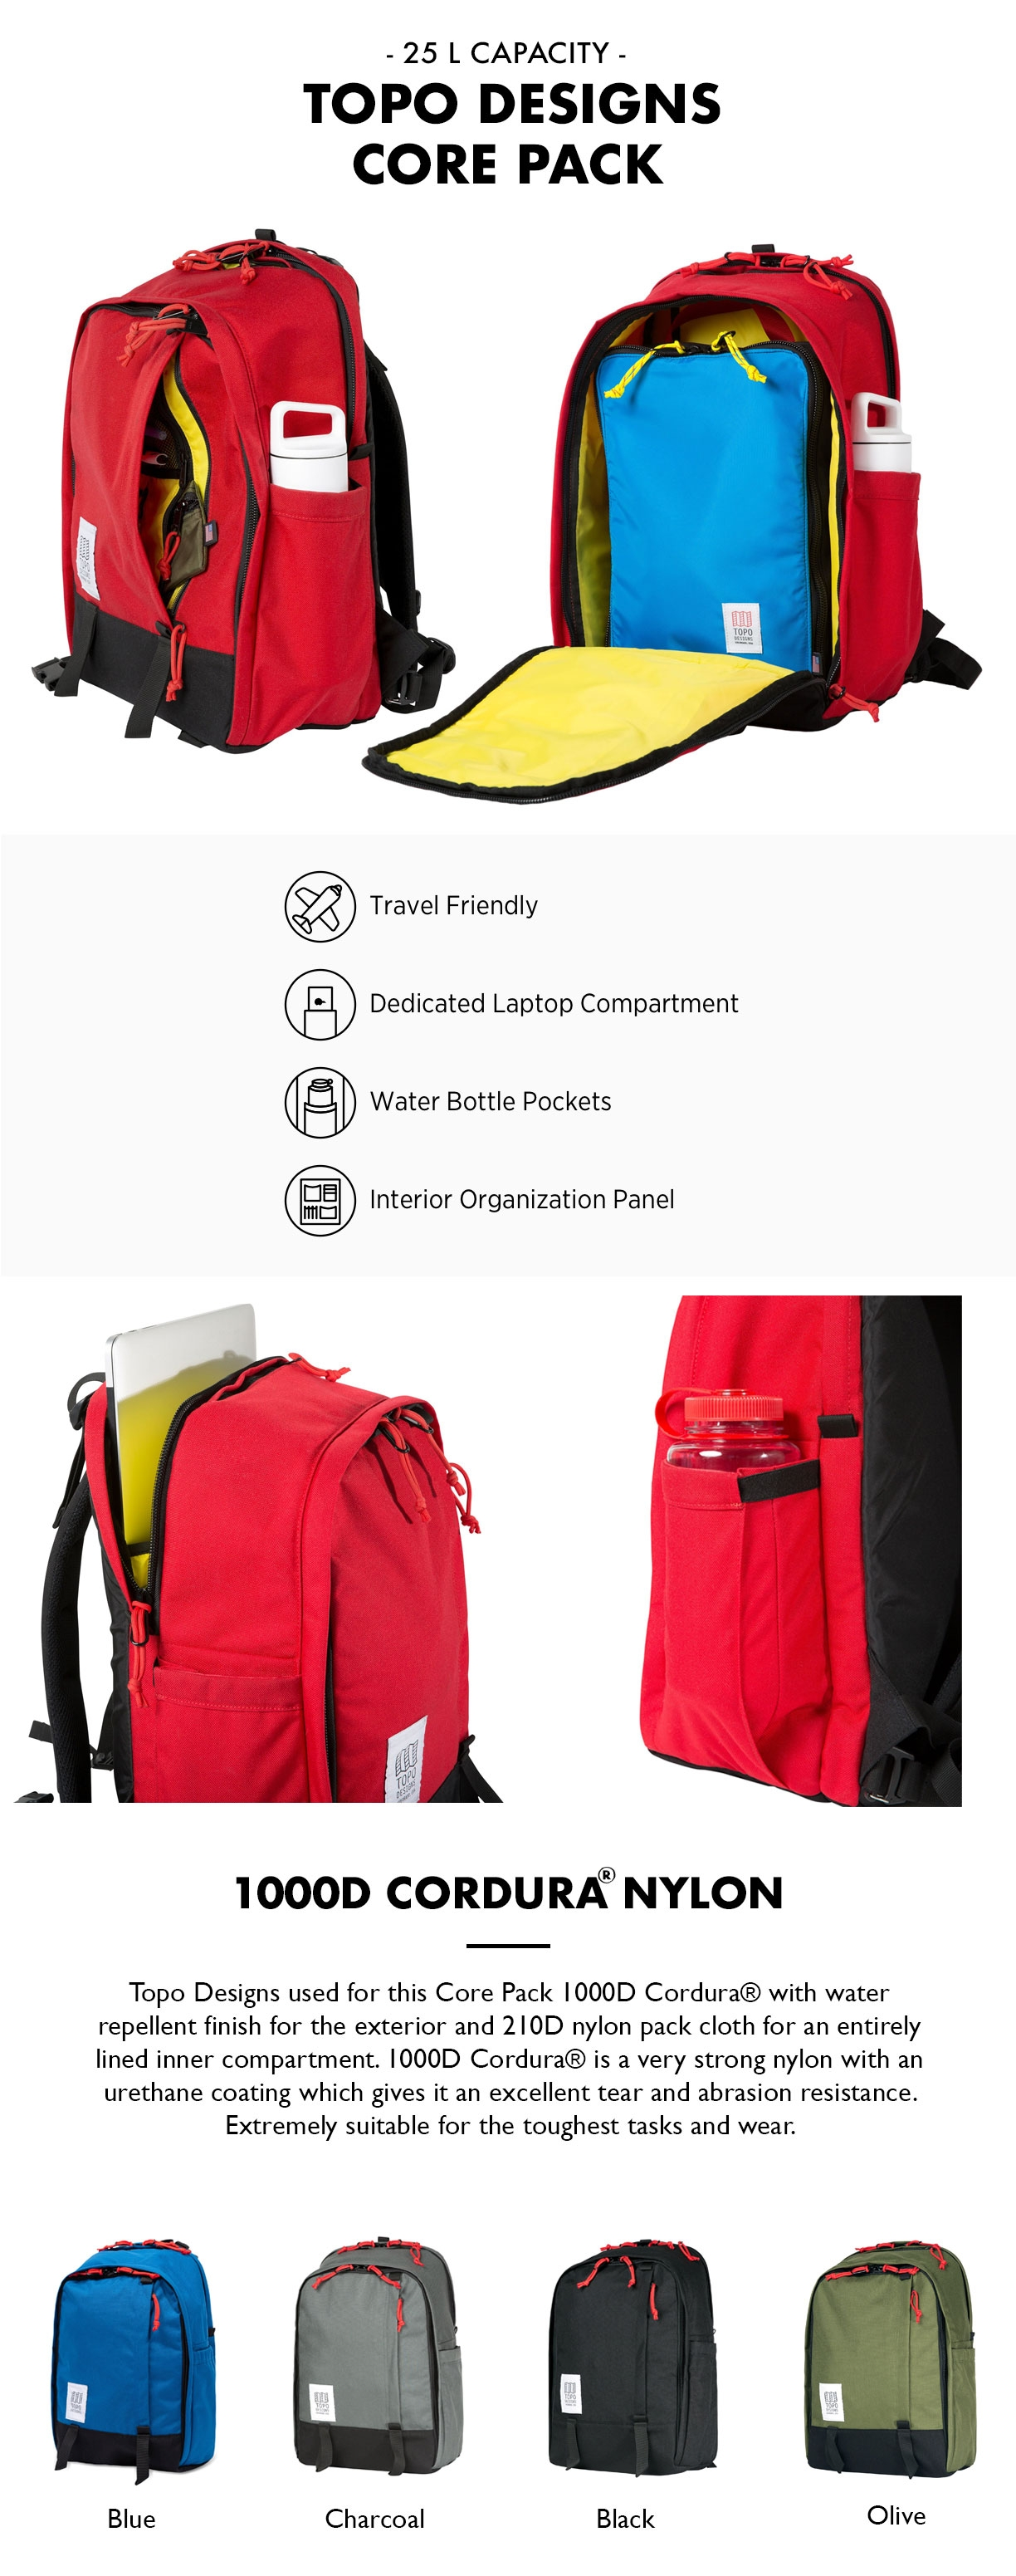 Topo Designs Core Pack product information